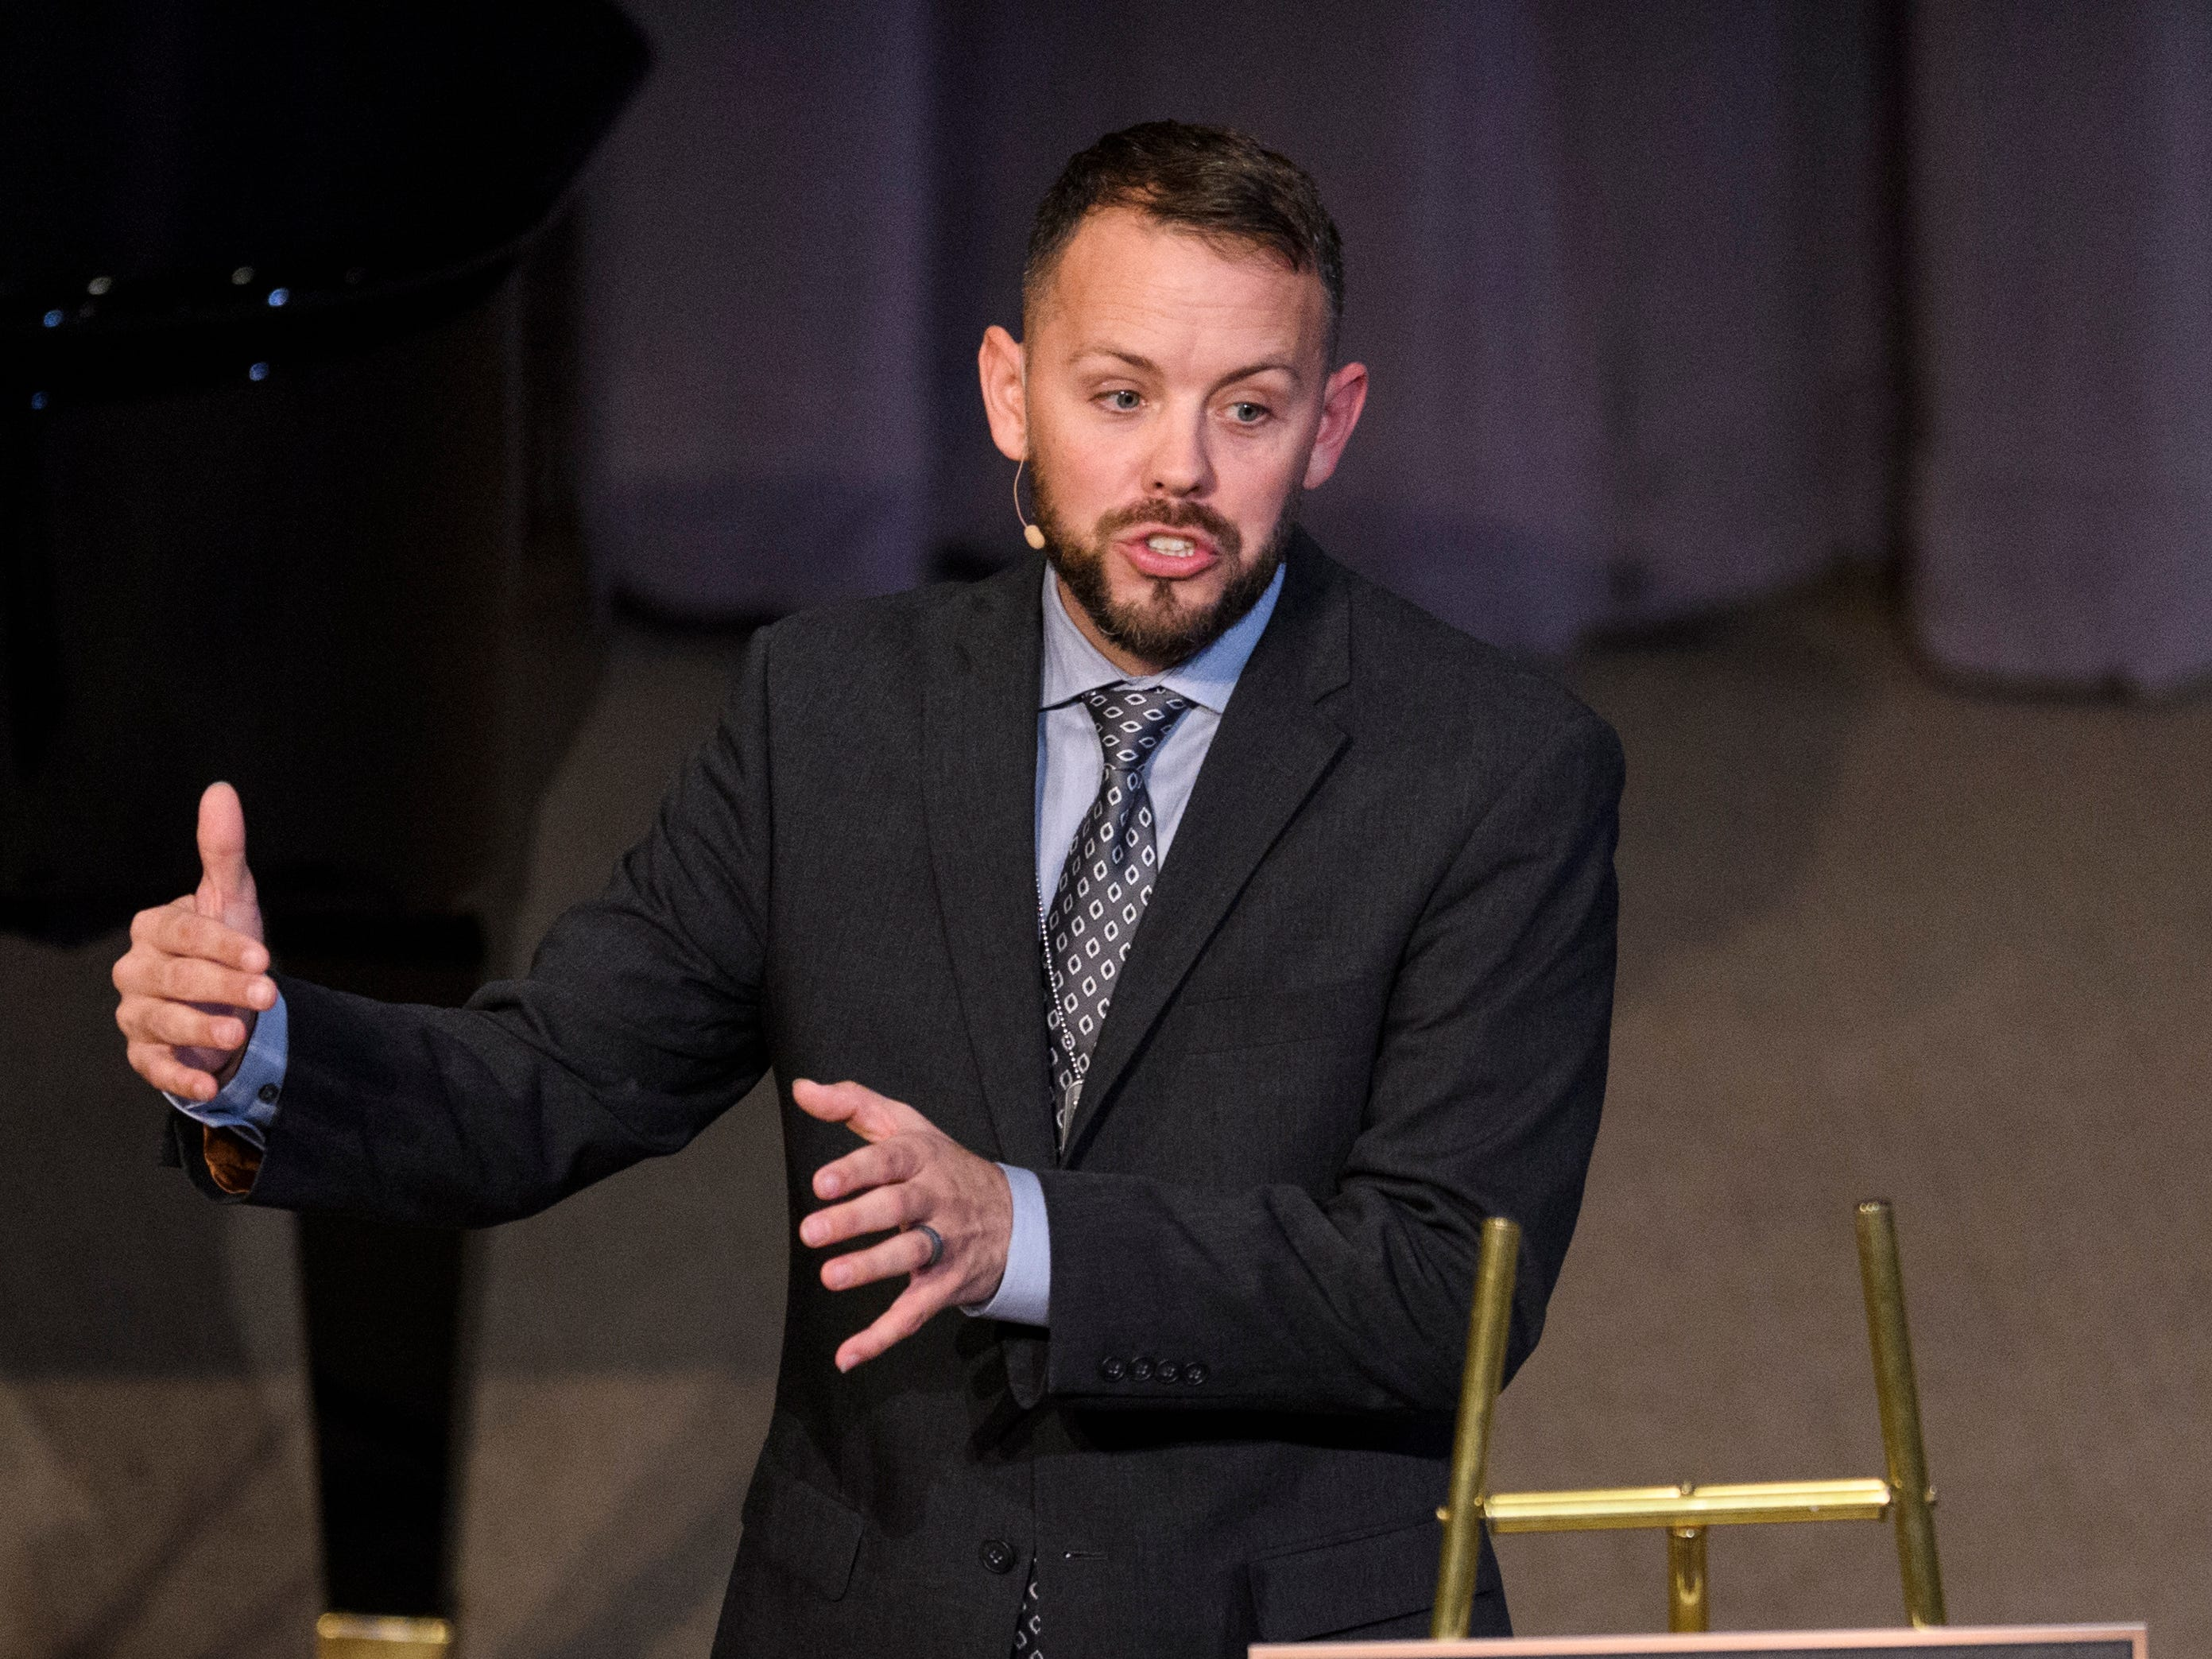 """Rev. Nathan Hazel addresses family and friends of Army Sgt. Drew Watters during the """"Celebration of Life"""" ceremony held for the 23-year-old at Christian Fellowship Church in Evansville, Ind., Wednesday, Nov. 14, 2018."""